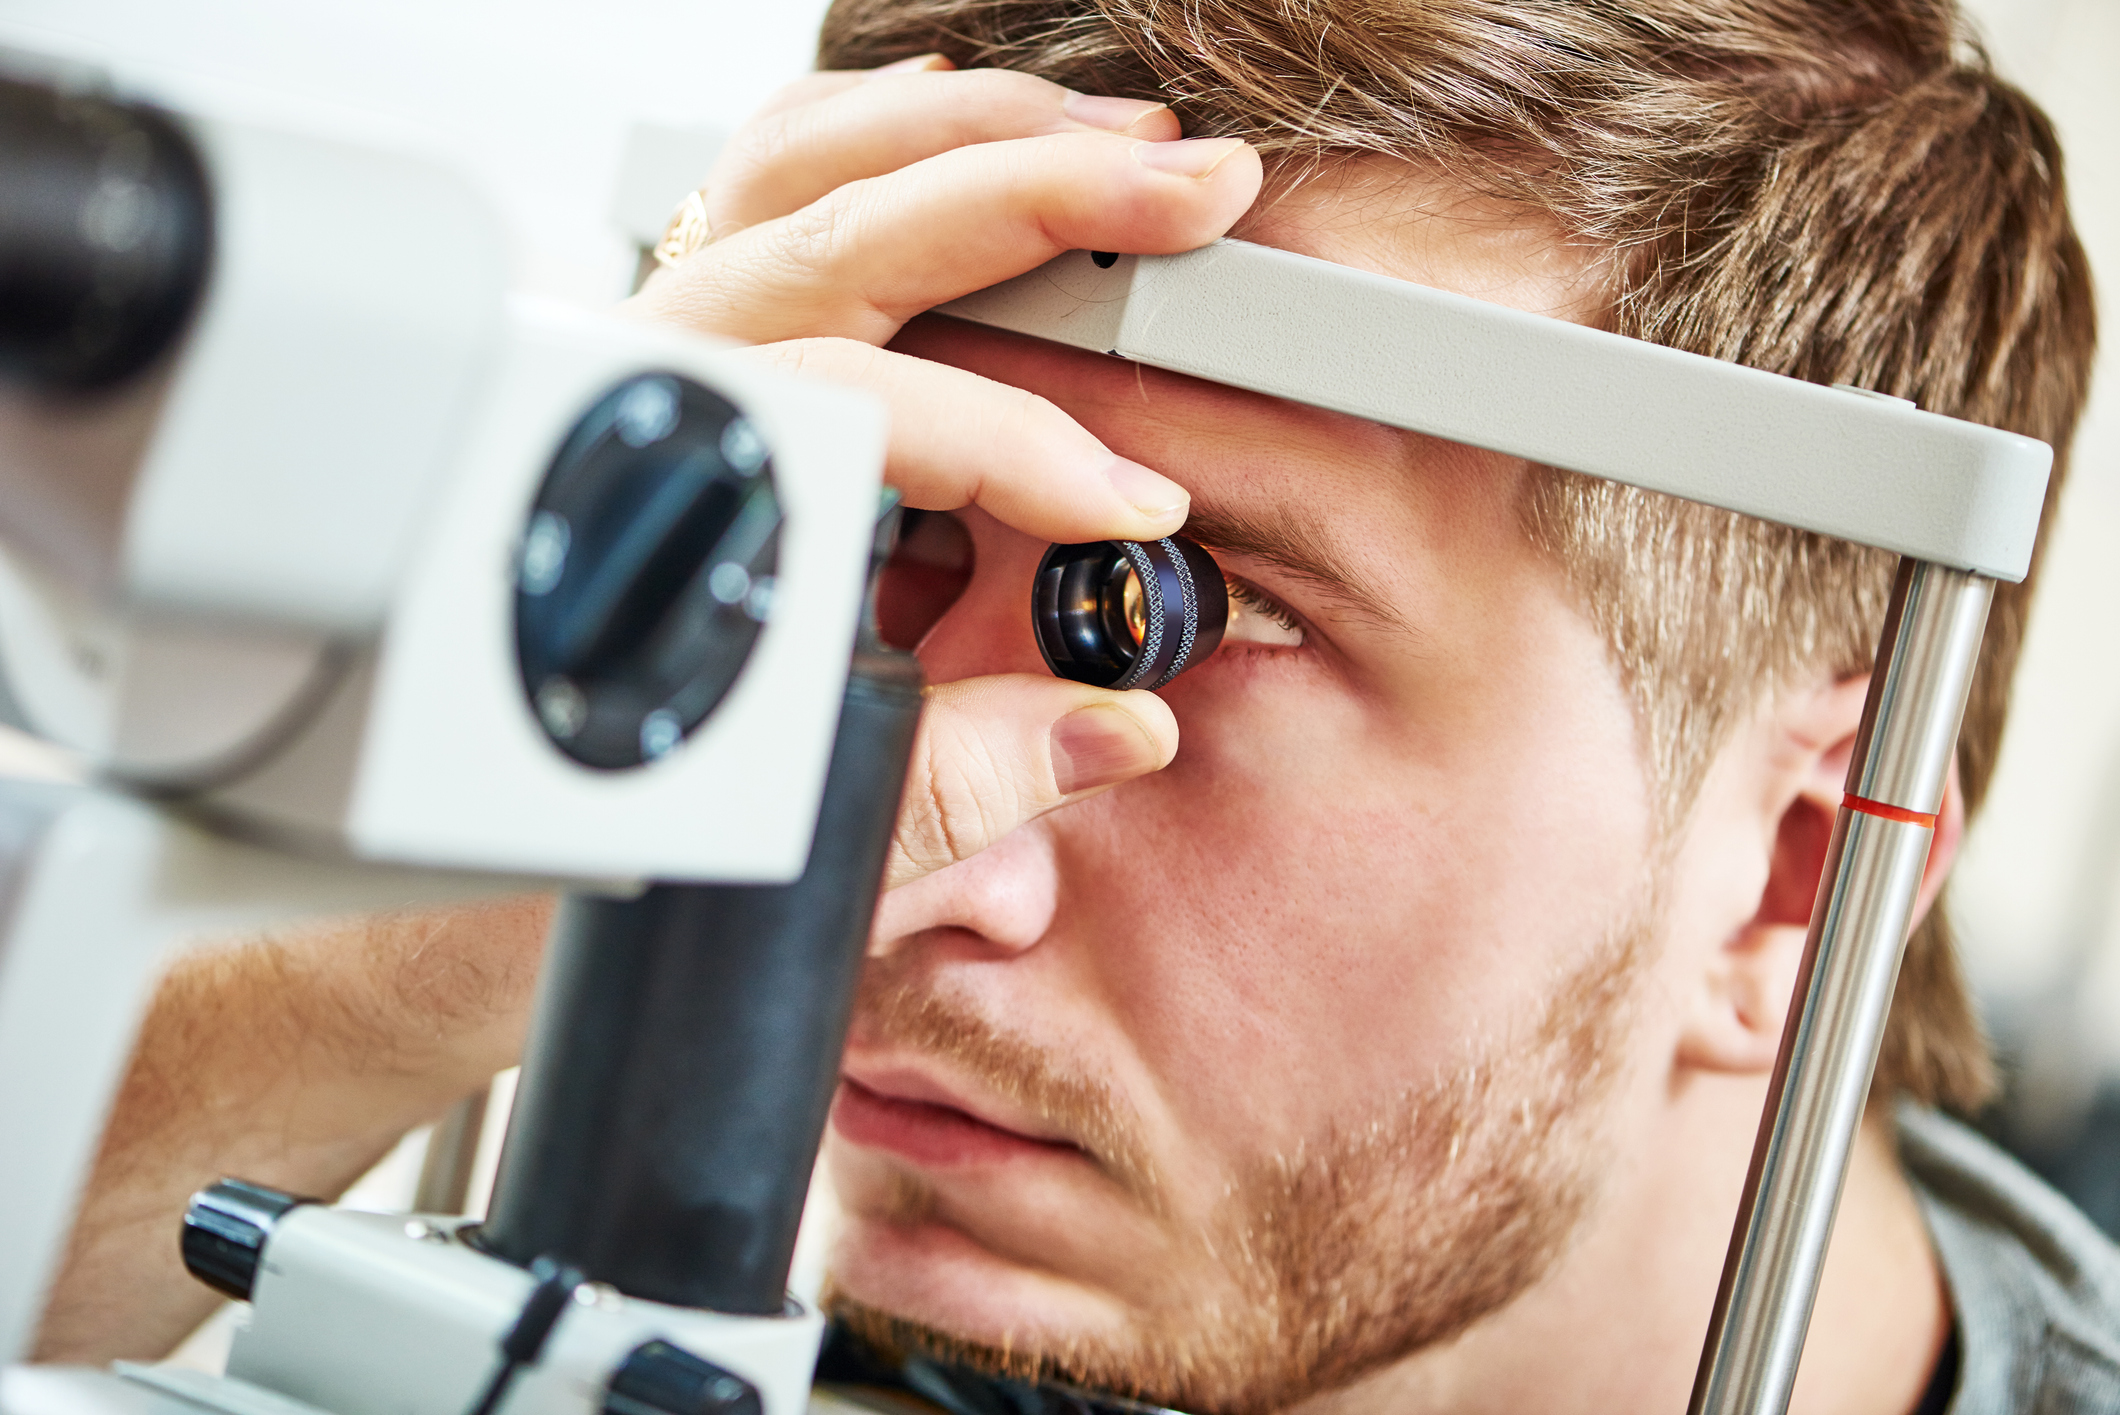 Most diagnostic journeys start with a comprehensive eye exam.